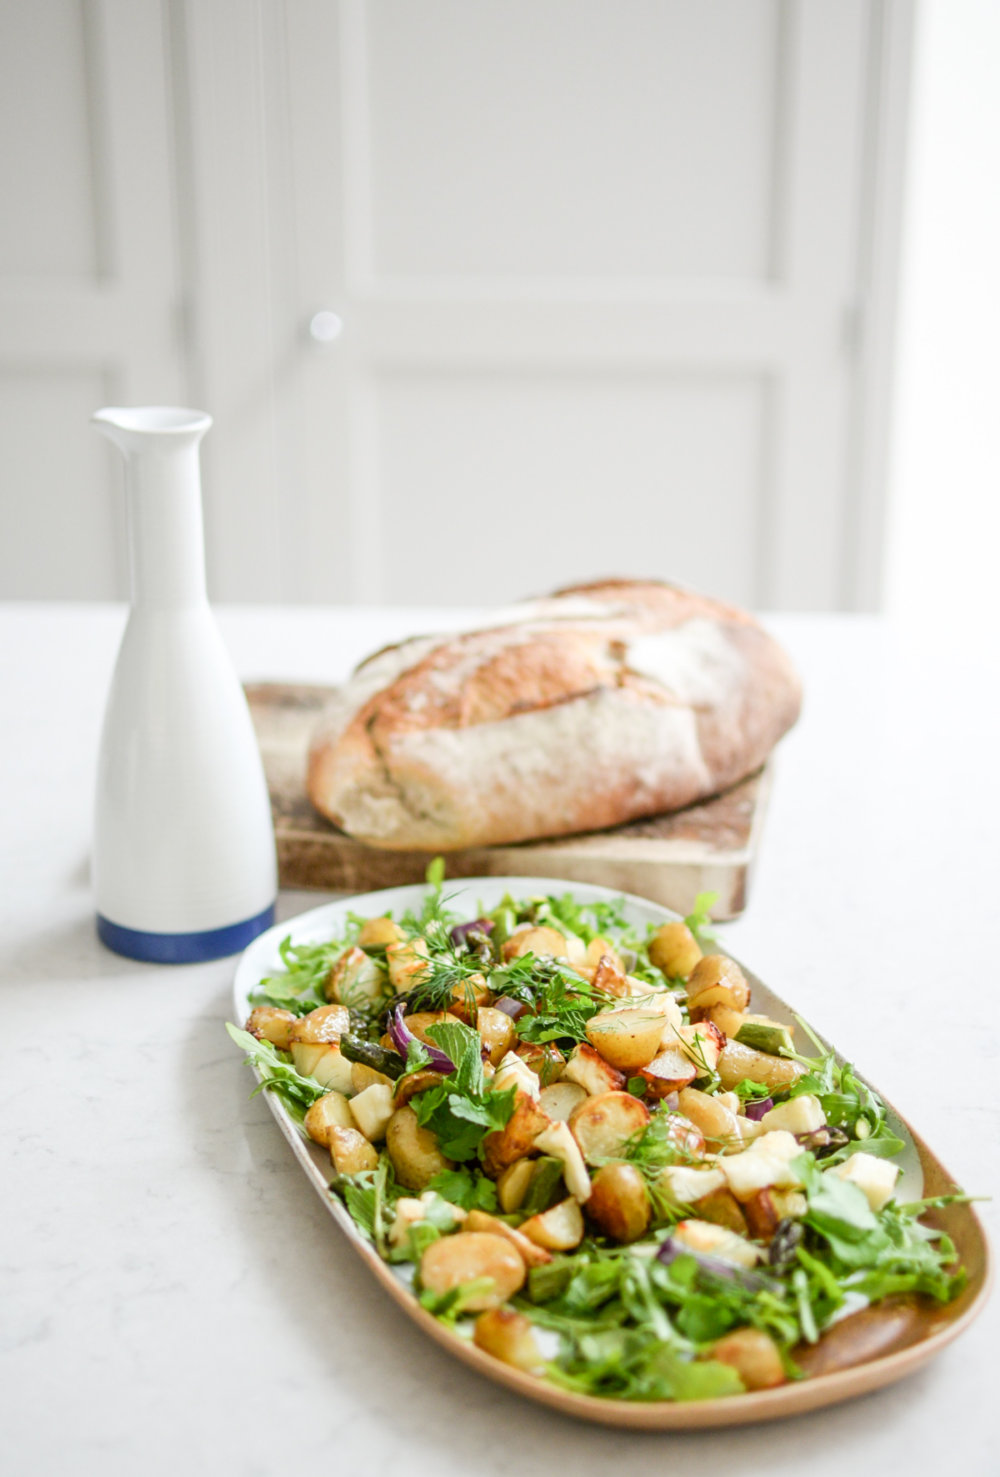 Warm New Potato, Asparagus and Halloumi Salad